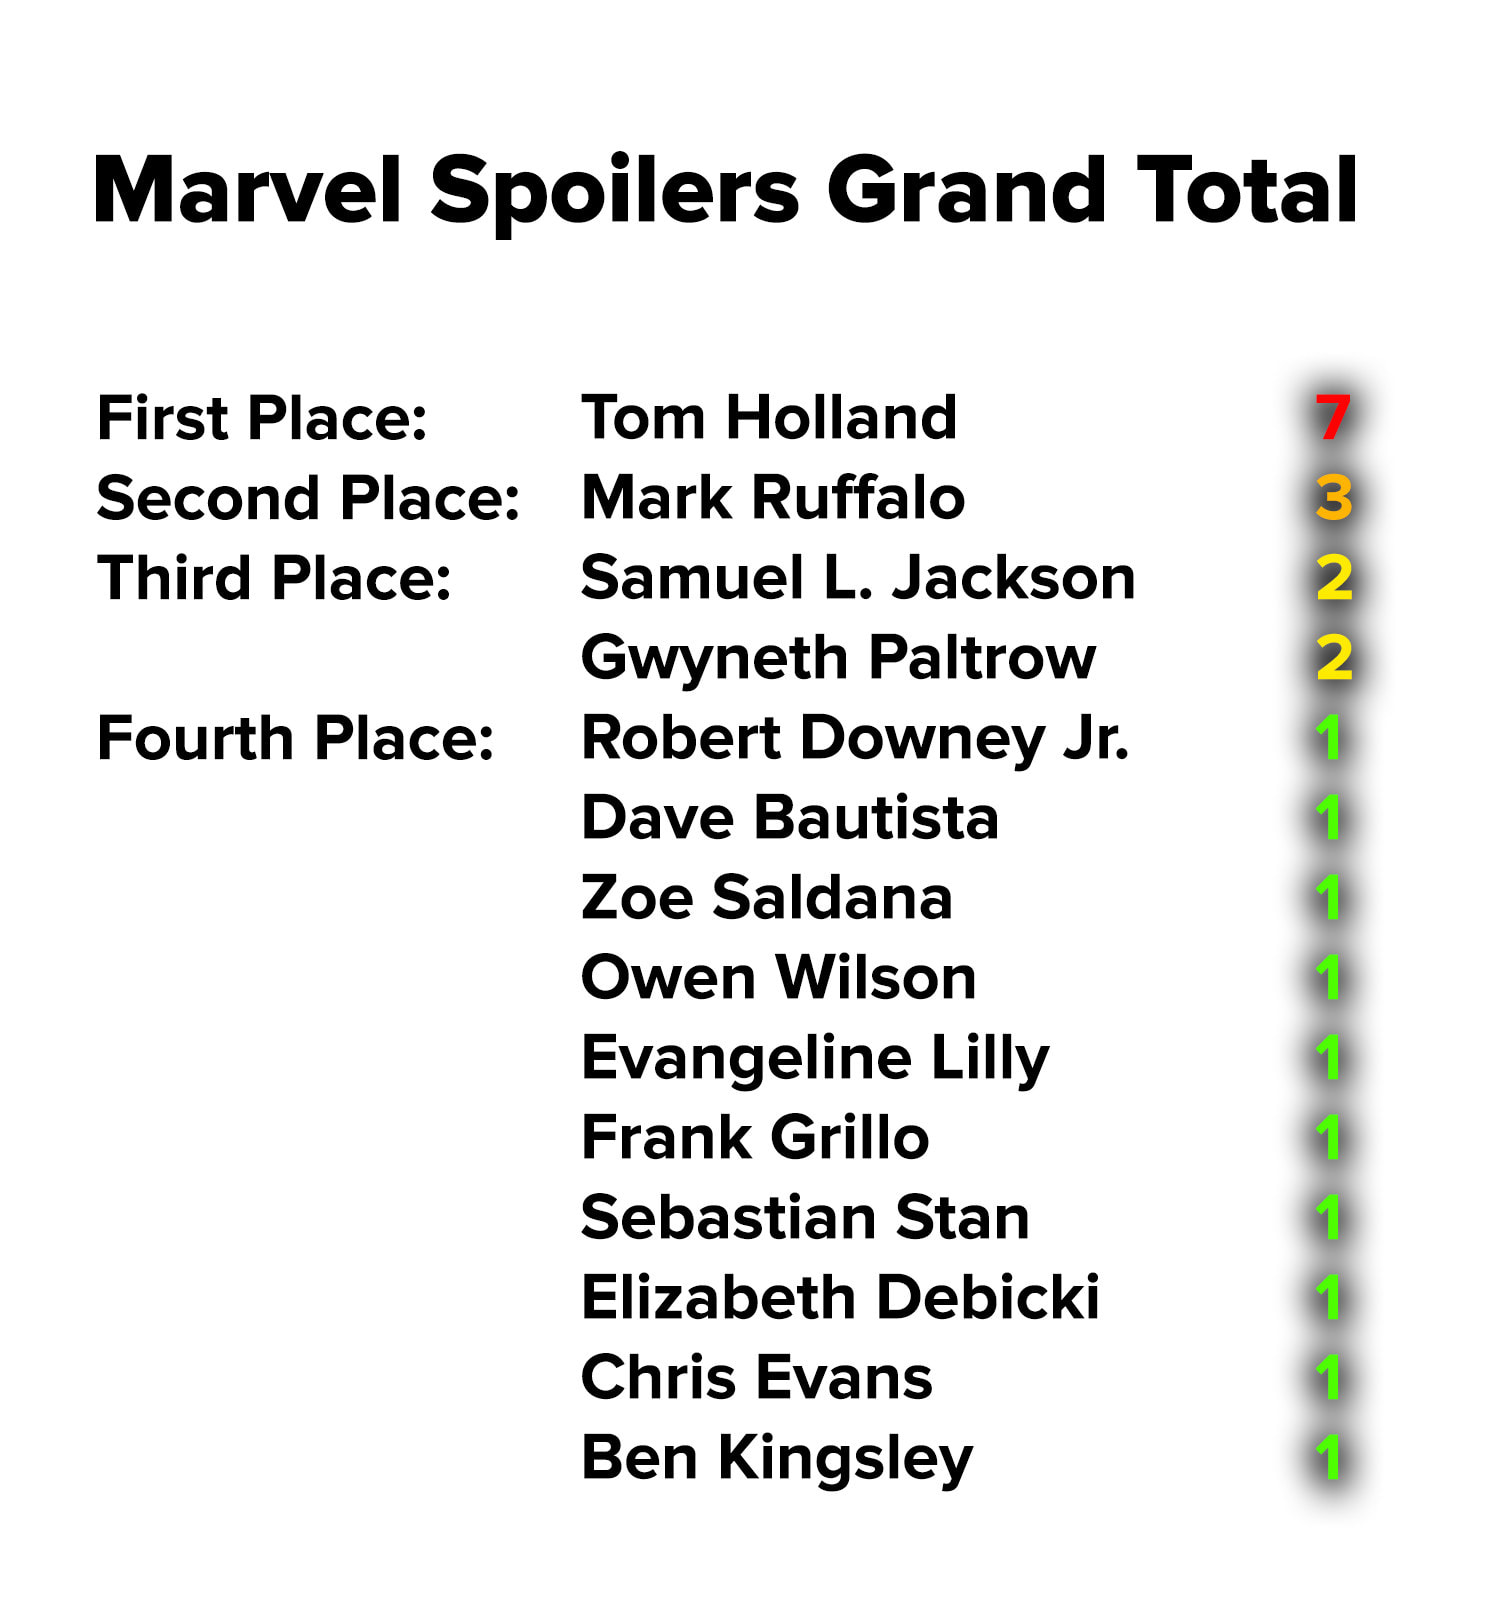 Tom Holland is in first with 7, Mark Ruffalo in second with 3, Samuel L Jackson and Gwyneth Paltrow tied for third with 2 each, and everyone else on the list has 1